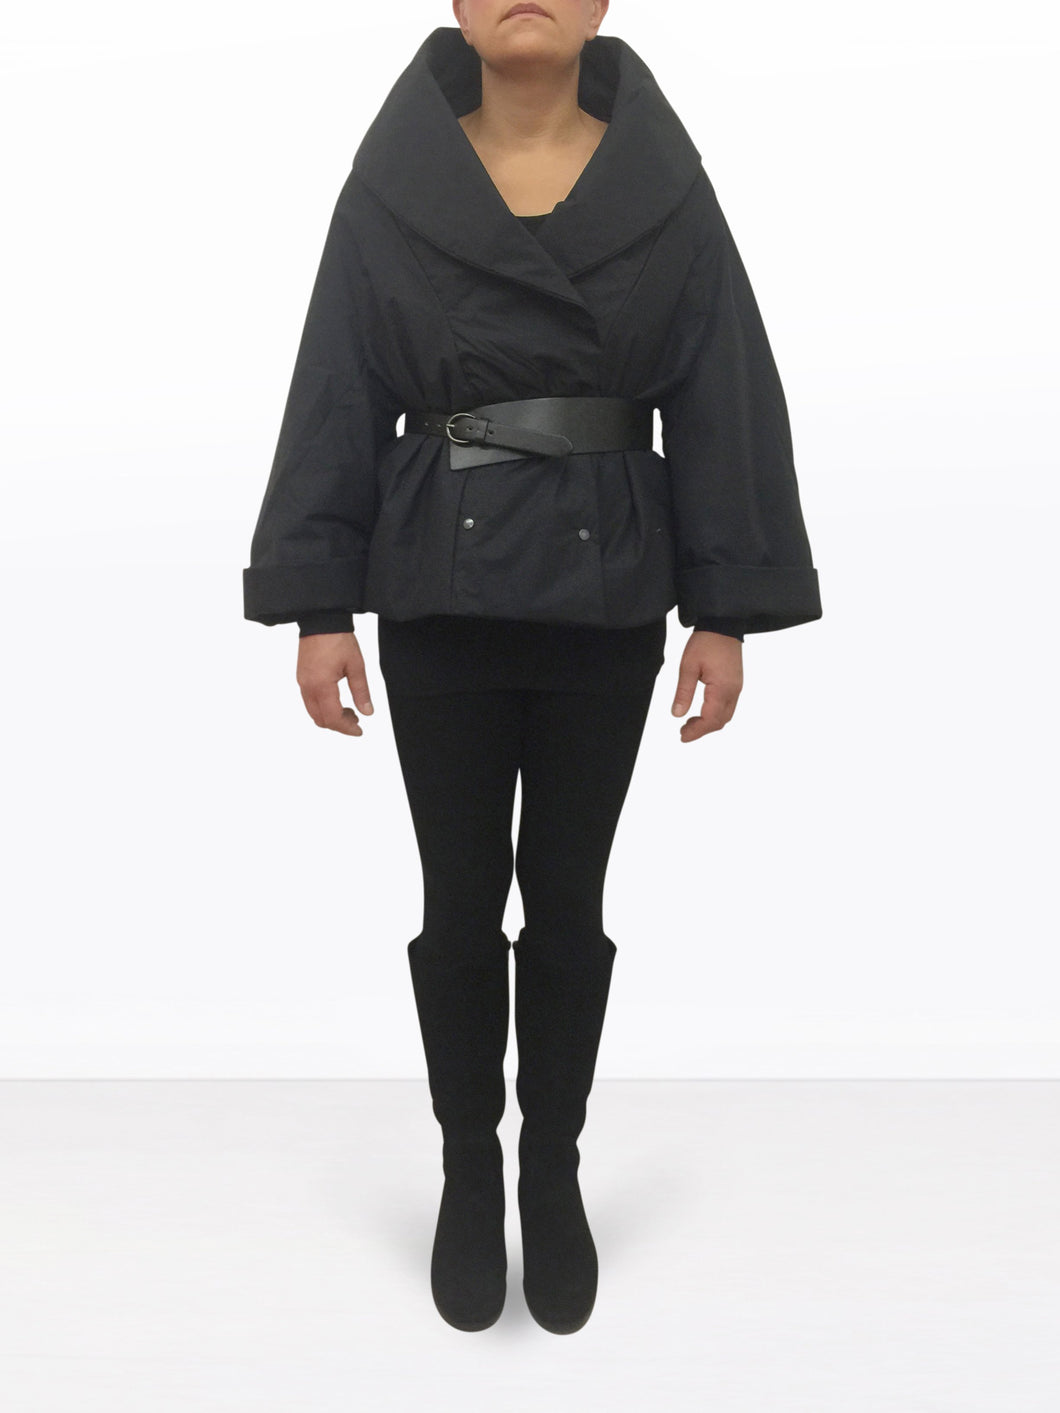 WRAPJACKET THINSULATE black